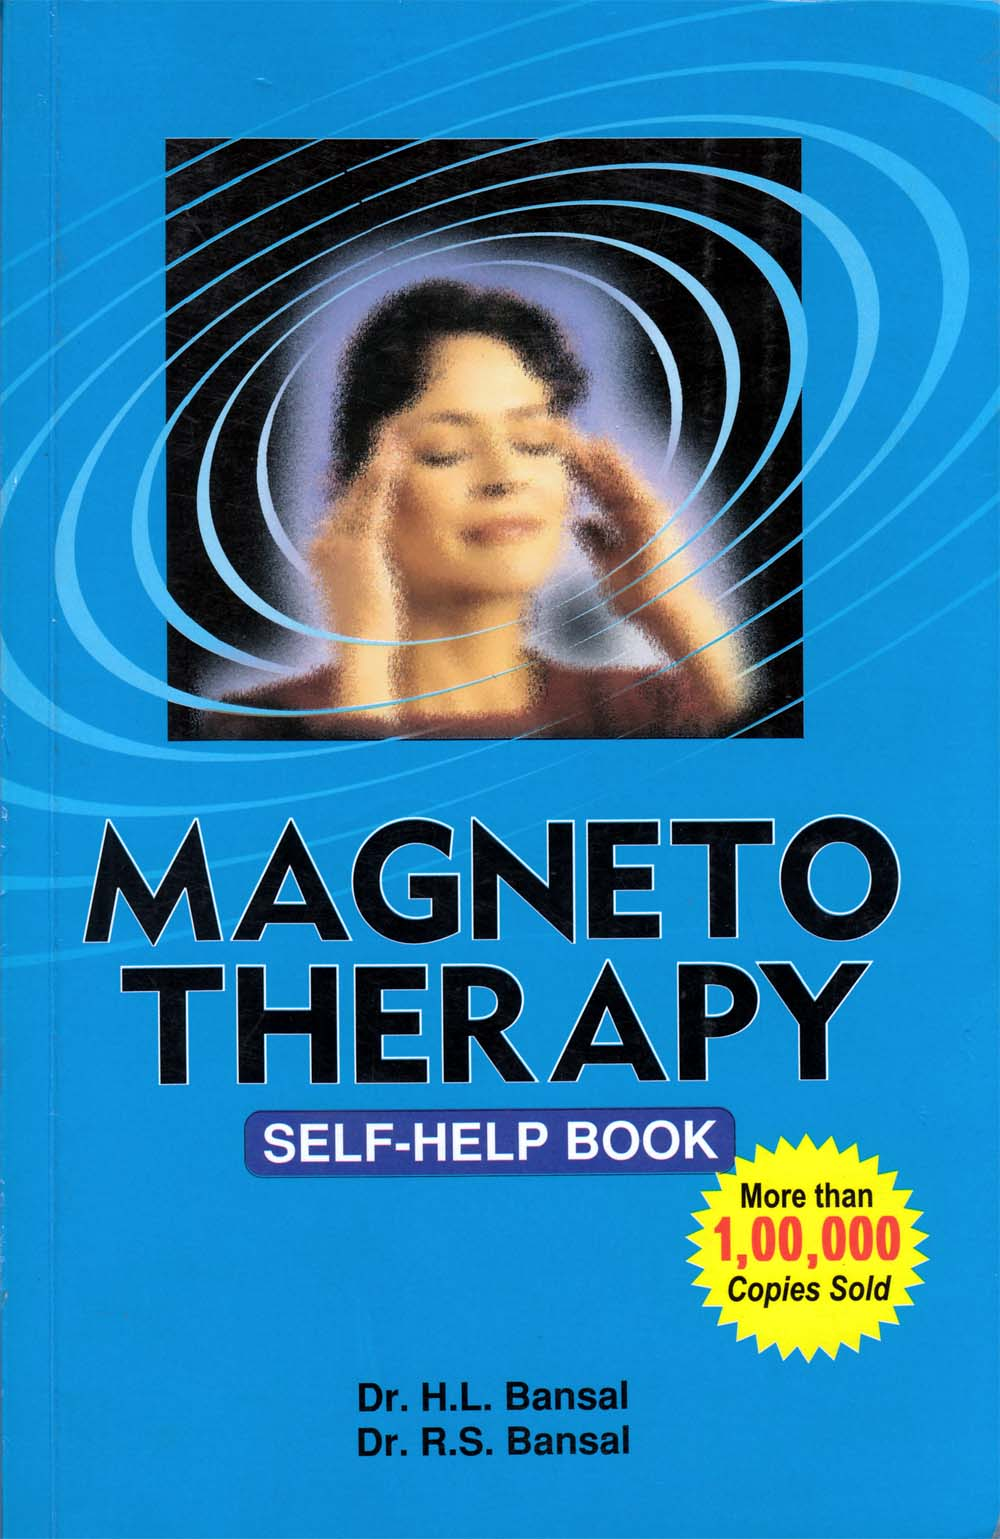 Magneto Therapy Book English Dr.H.L.Bansal